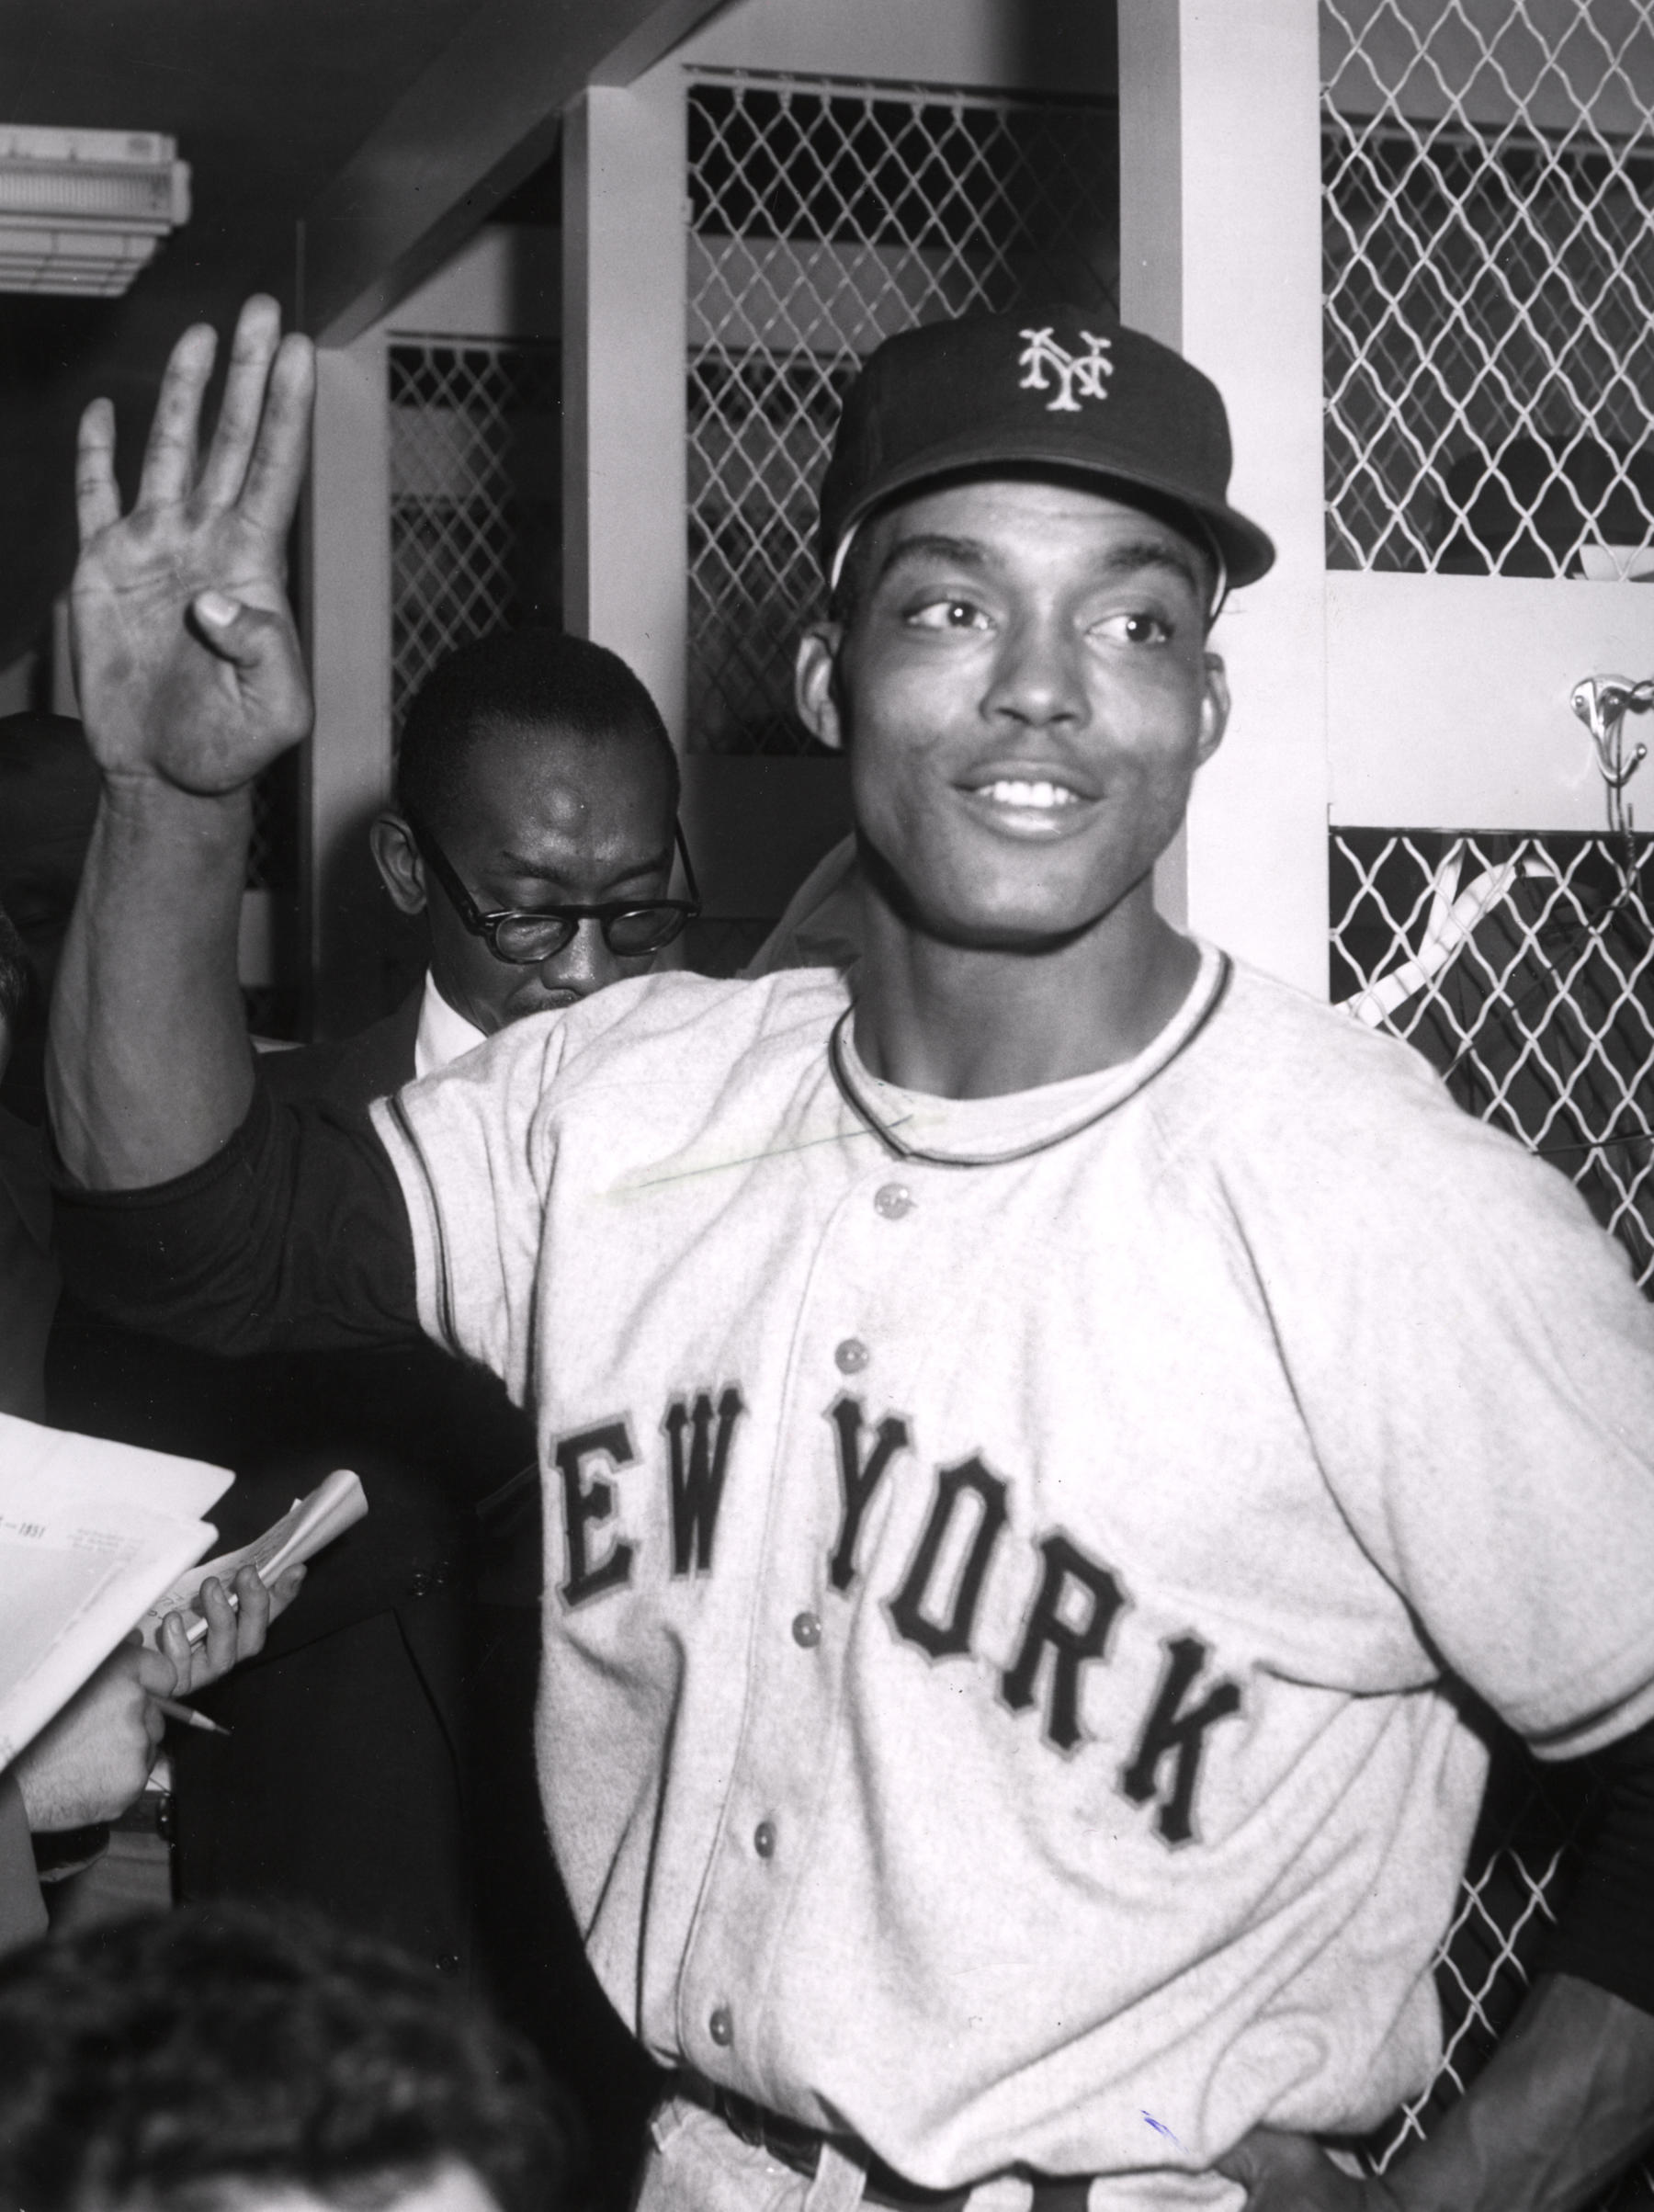 Monte Irvin, New York Giants - BL-2328-68WTr (National Baseball Hall of Fame Library)